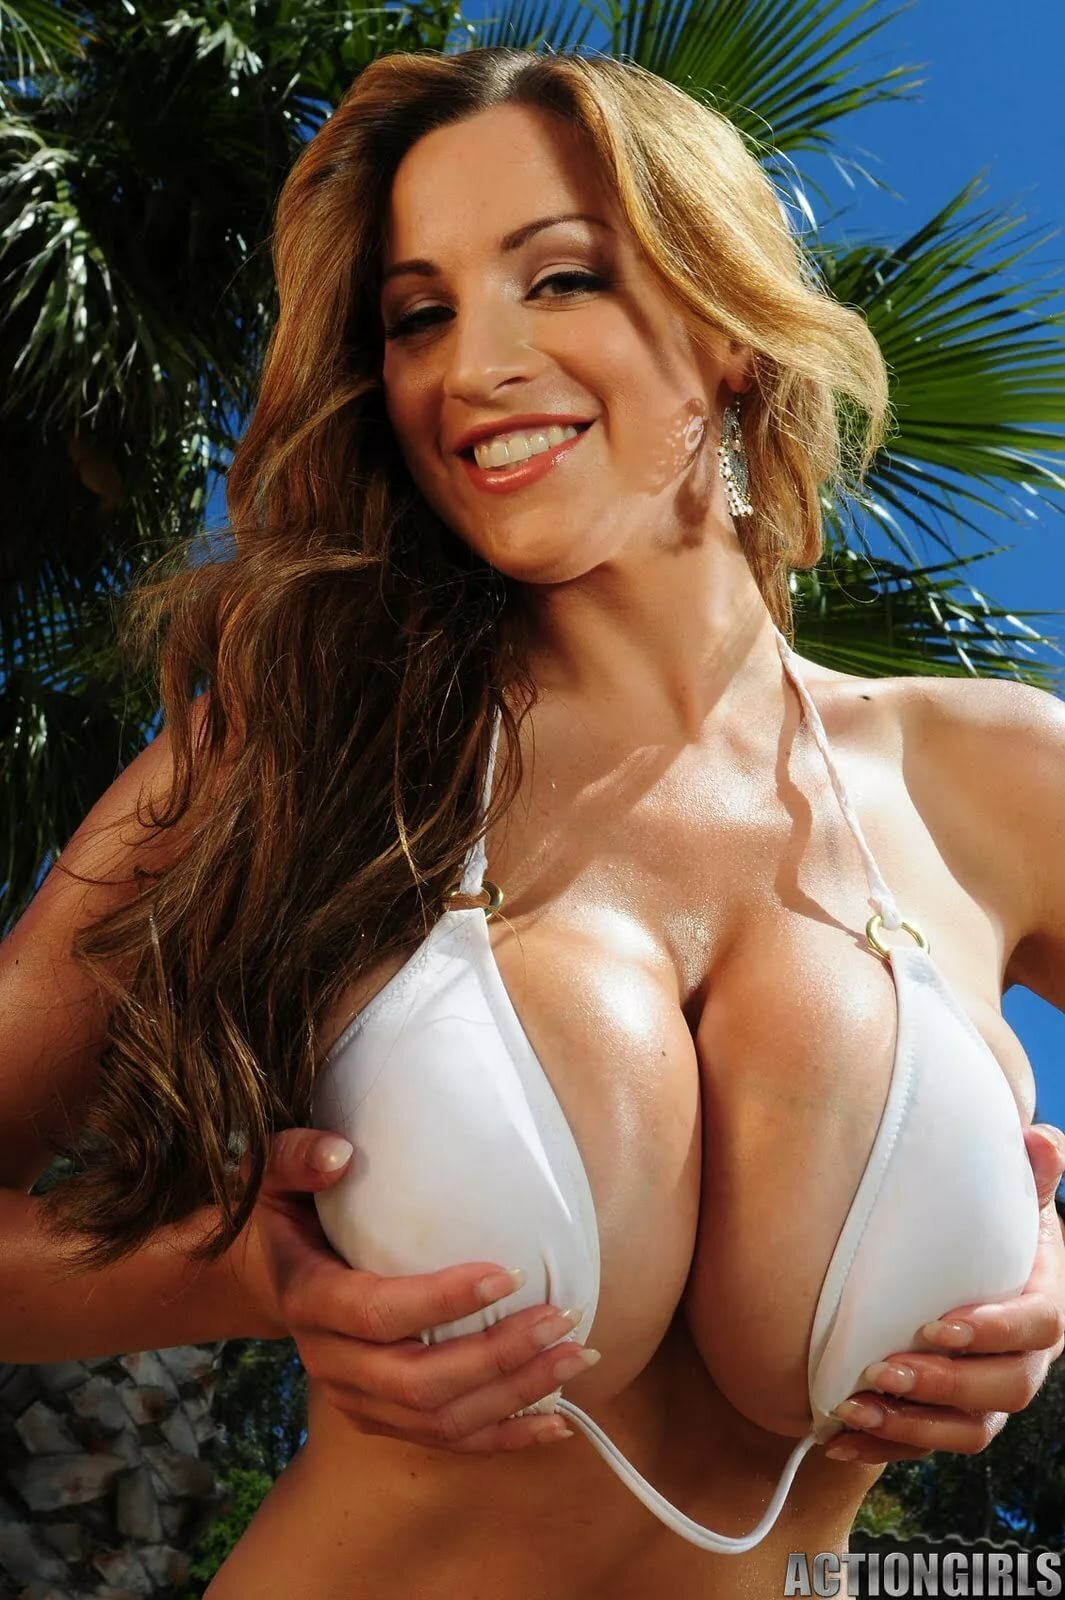 playing-with-big-breast-blonde-big-ass-big-tits-pics-free